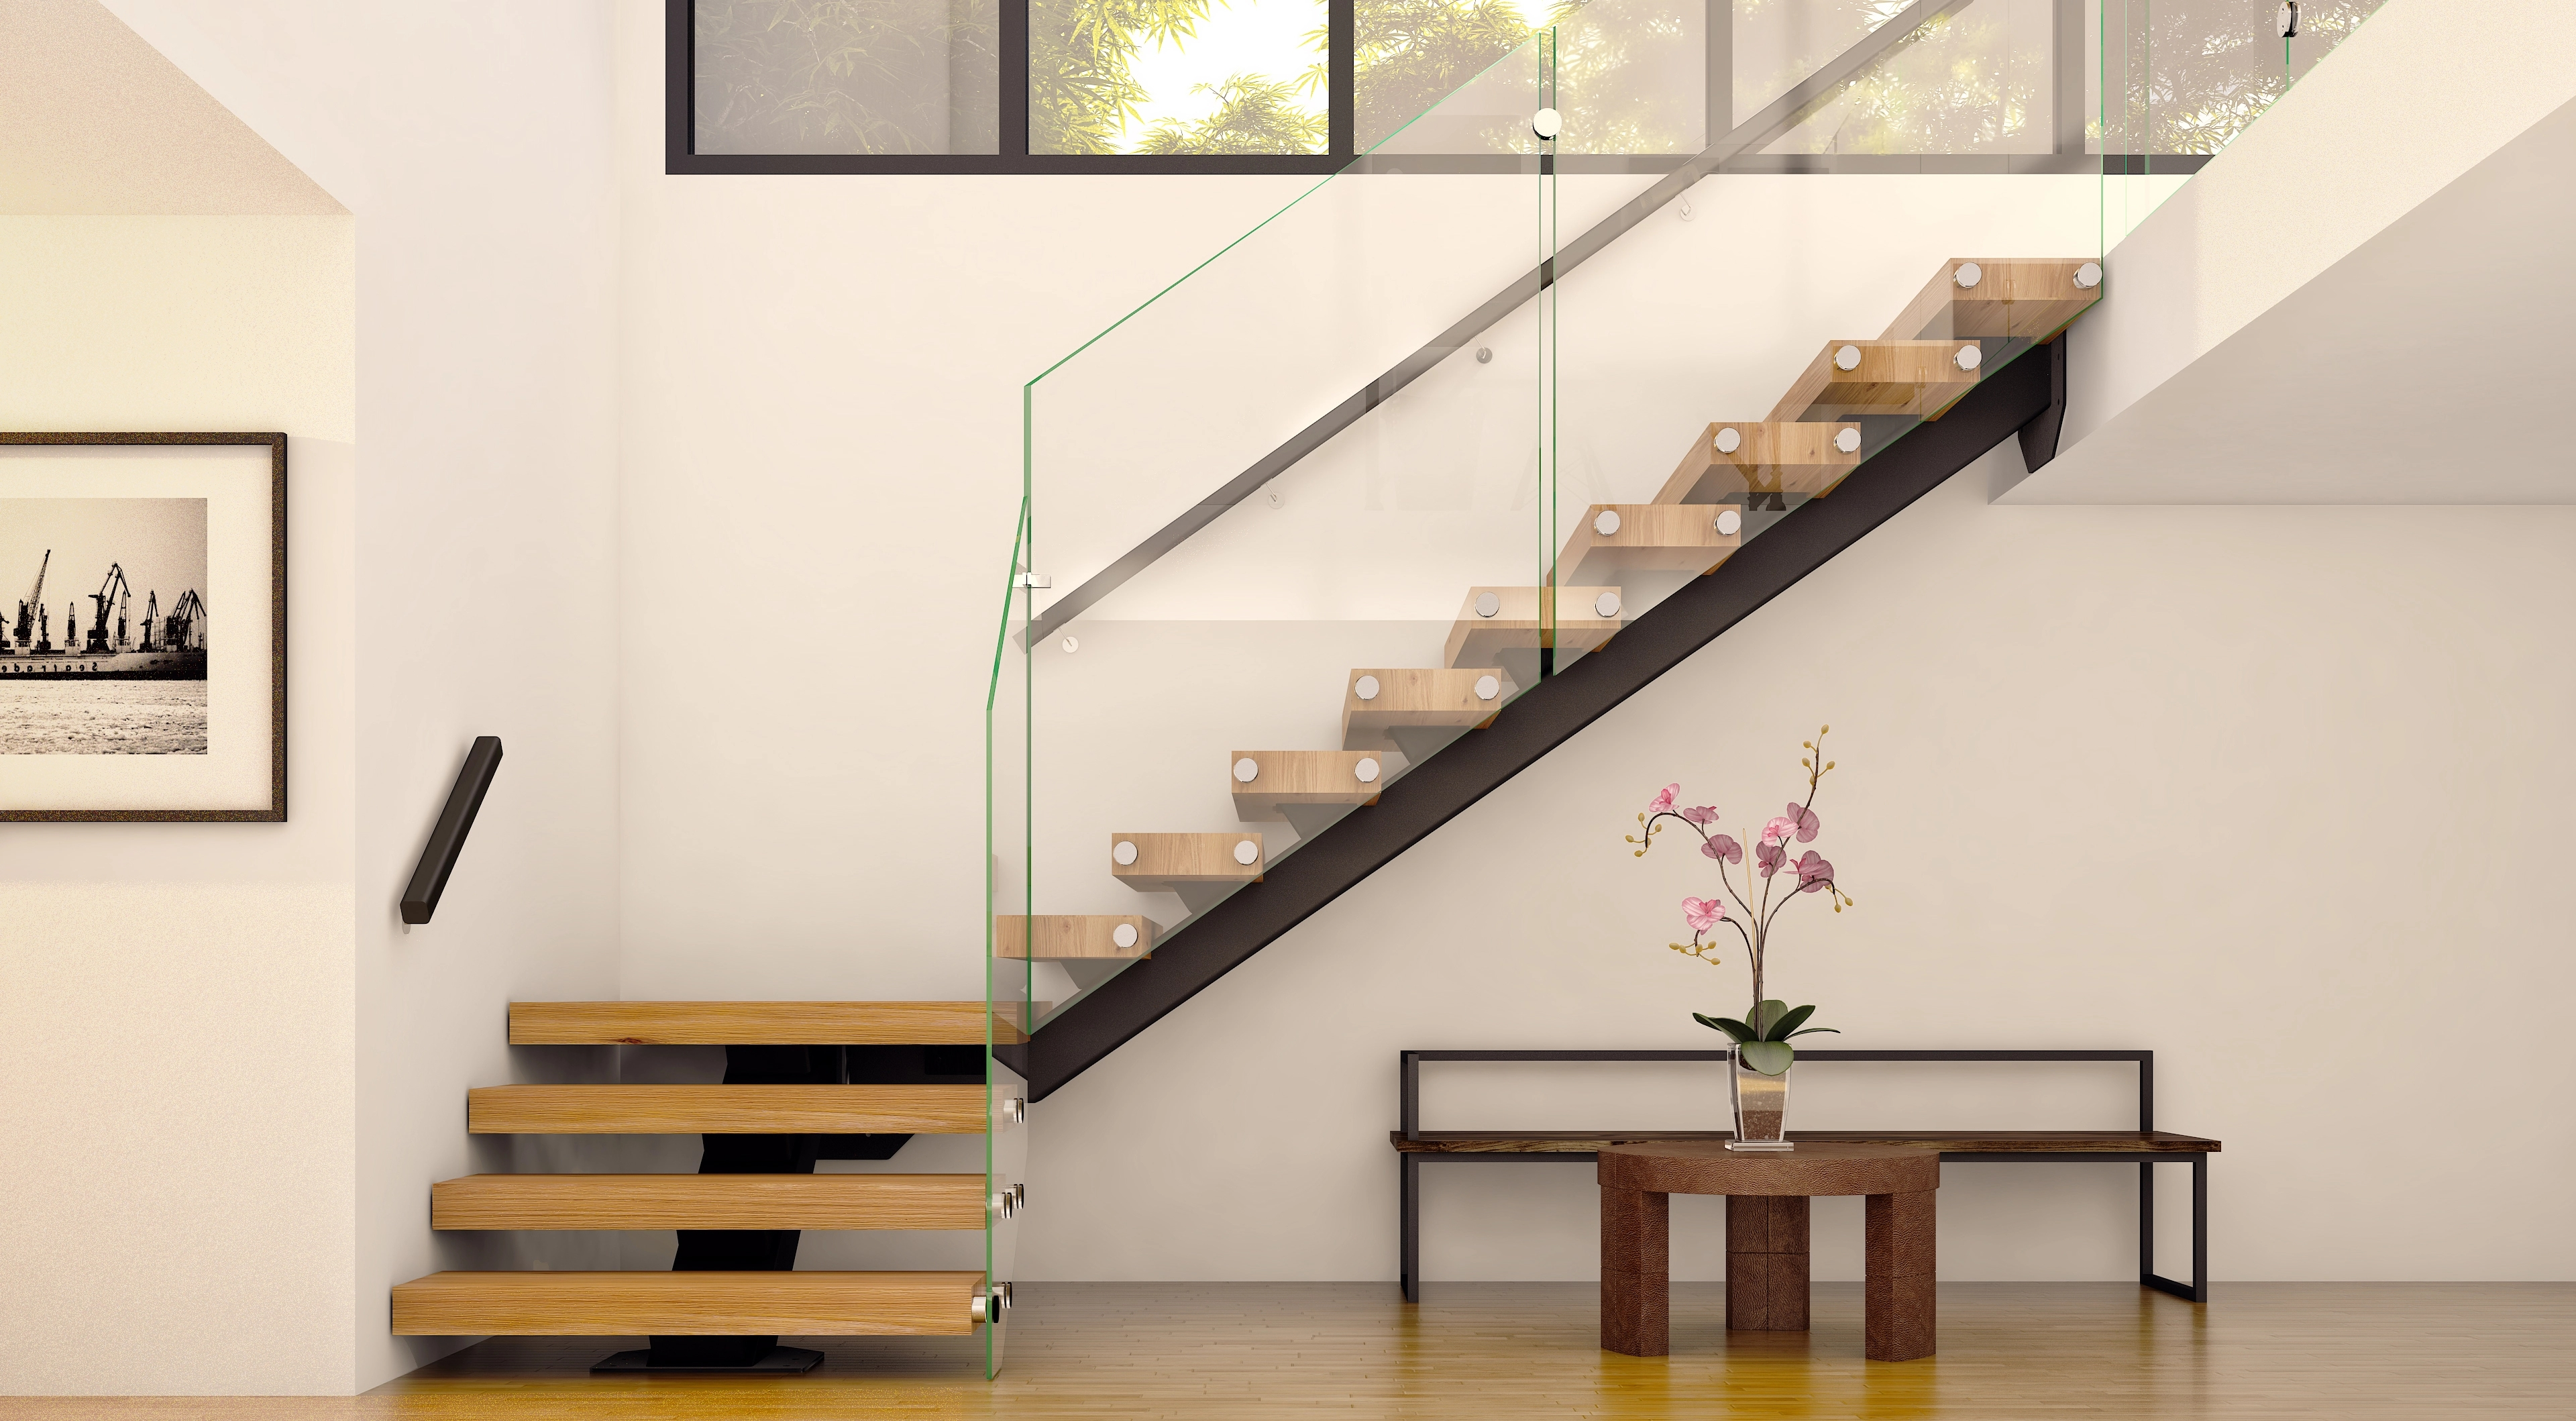 Floating Straight Staircases Made To Order Mylen Stairs | Staircase Companies Near Me | Wrought Iron Balusters | Stair Remodel | Stair Parts | Stair Stringers | Stair Railing